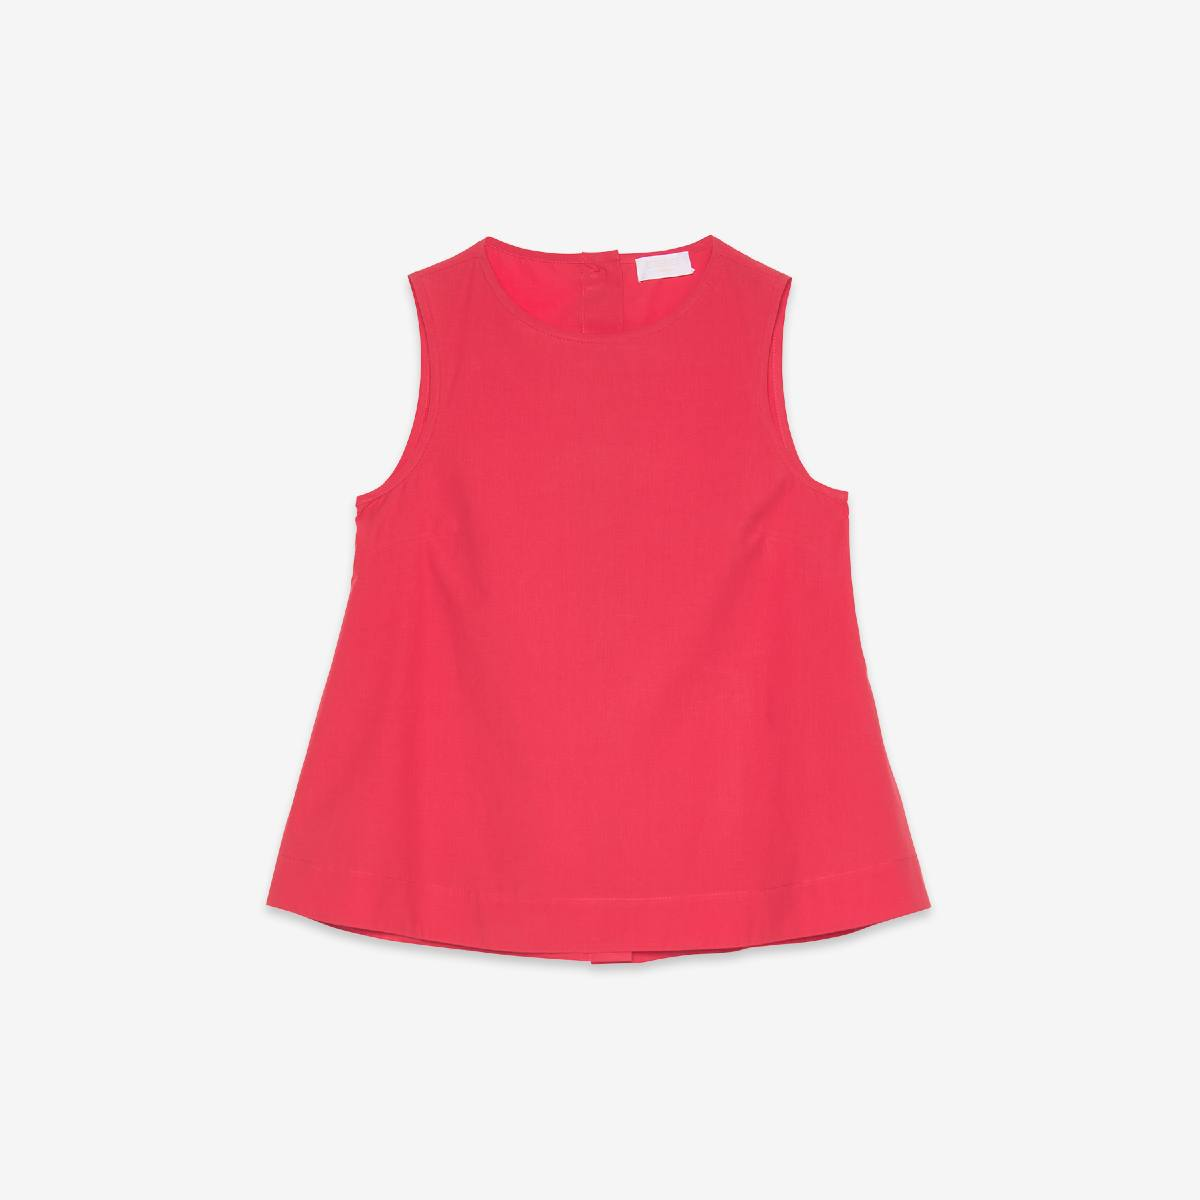 Coral Top by Ottod'Ame | Restoration Yard